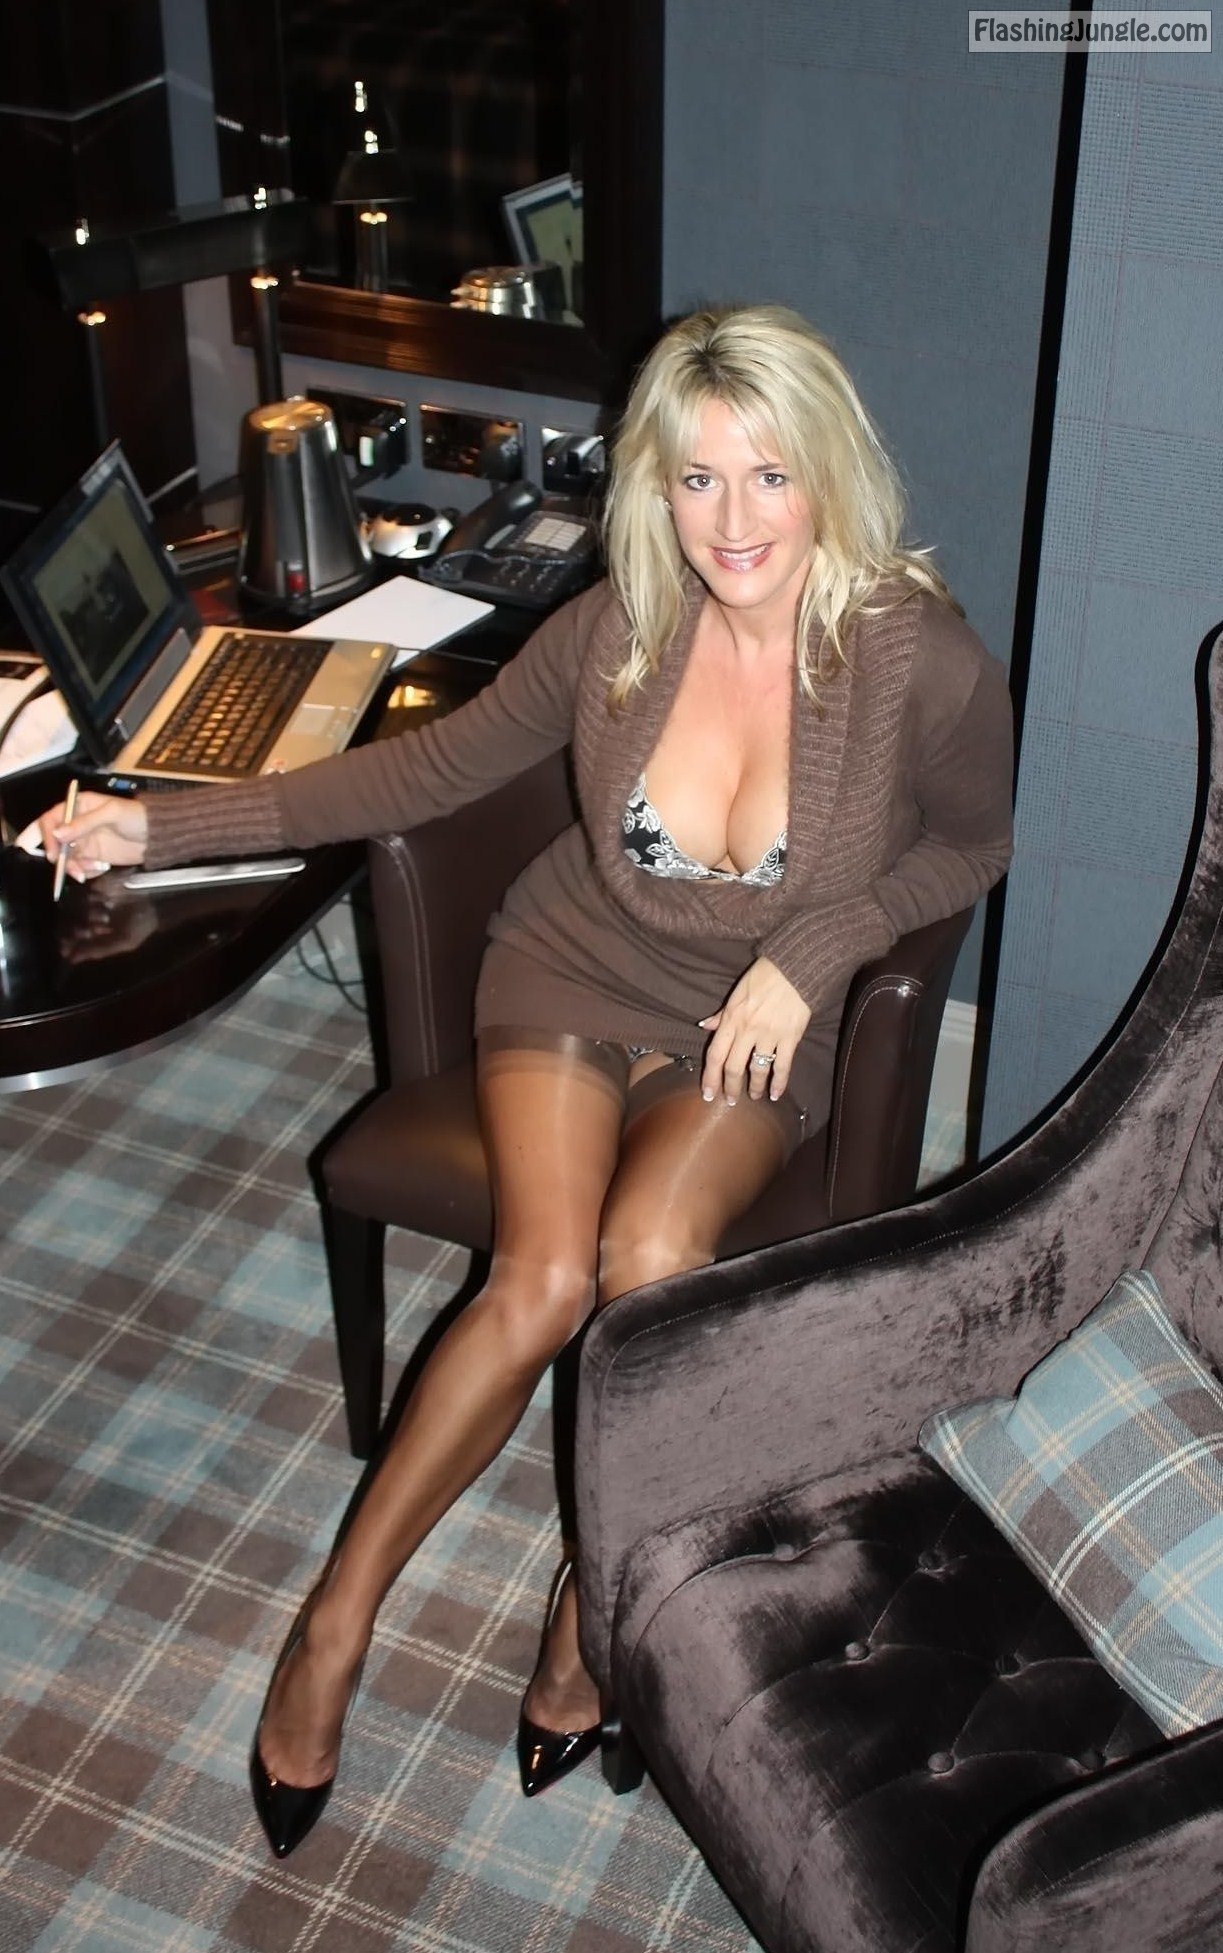 Busty secretary in stockings flashes her panties at the office upskirt milf pics